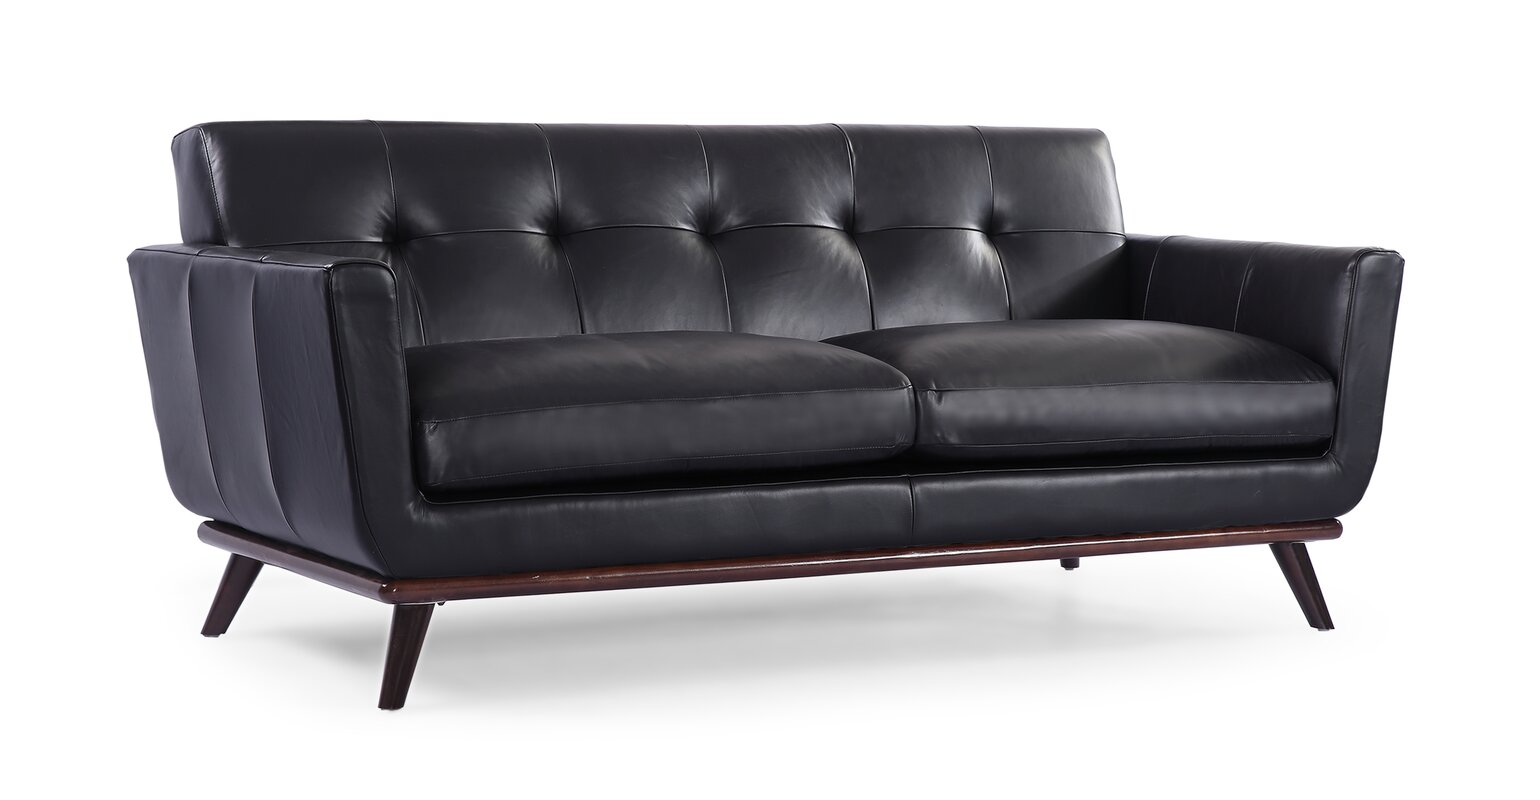 modern vintage couch. Luther Mid Century Modern Vintage Leather Sofa With Flared Arms Couch